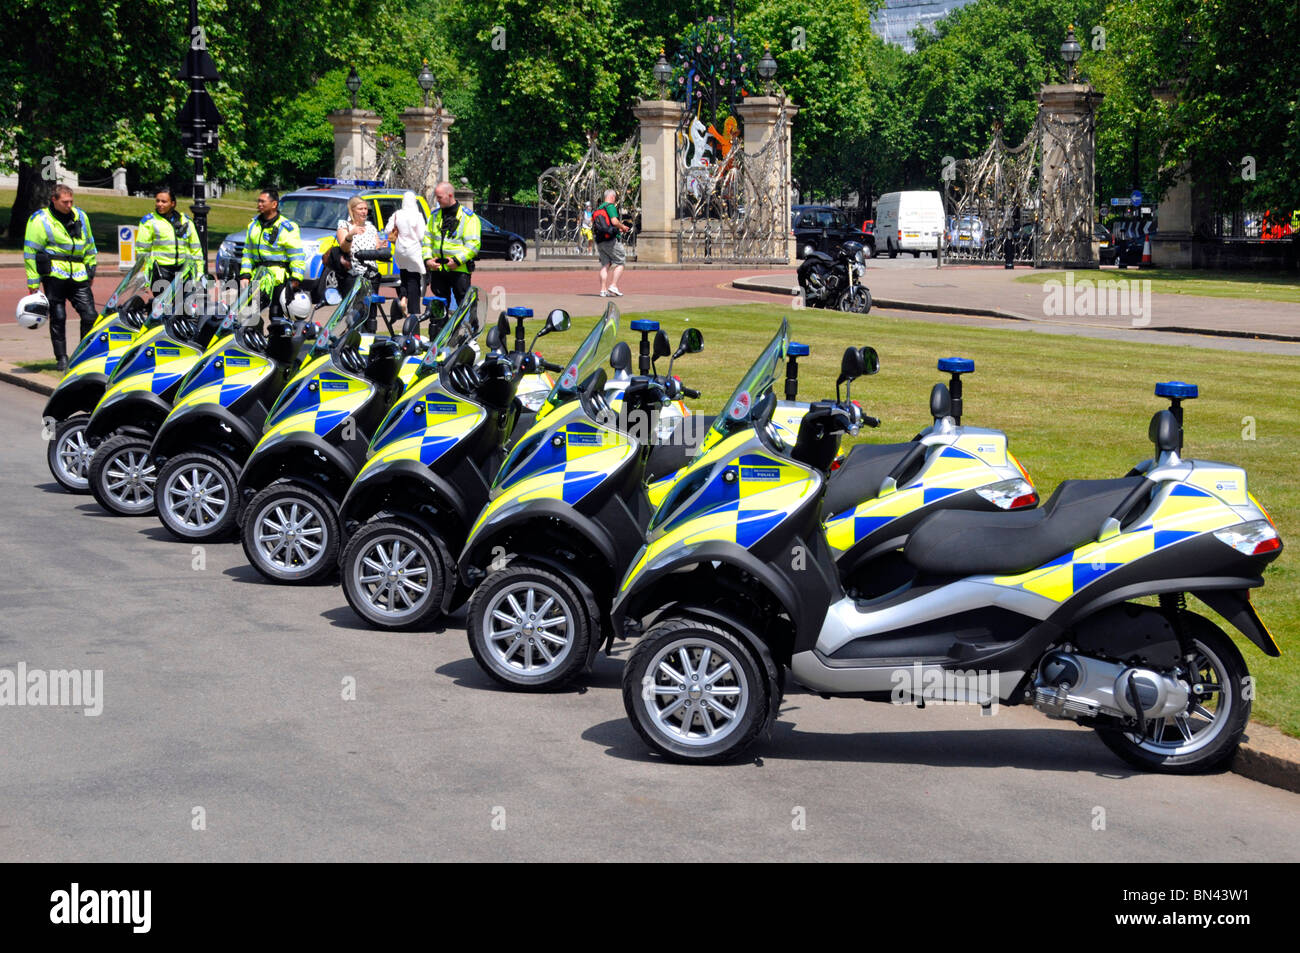 Piaggio MP3 scooters for Metropolitan Police Safer Transport